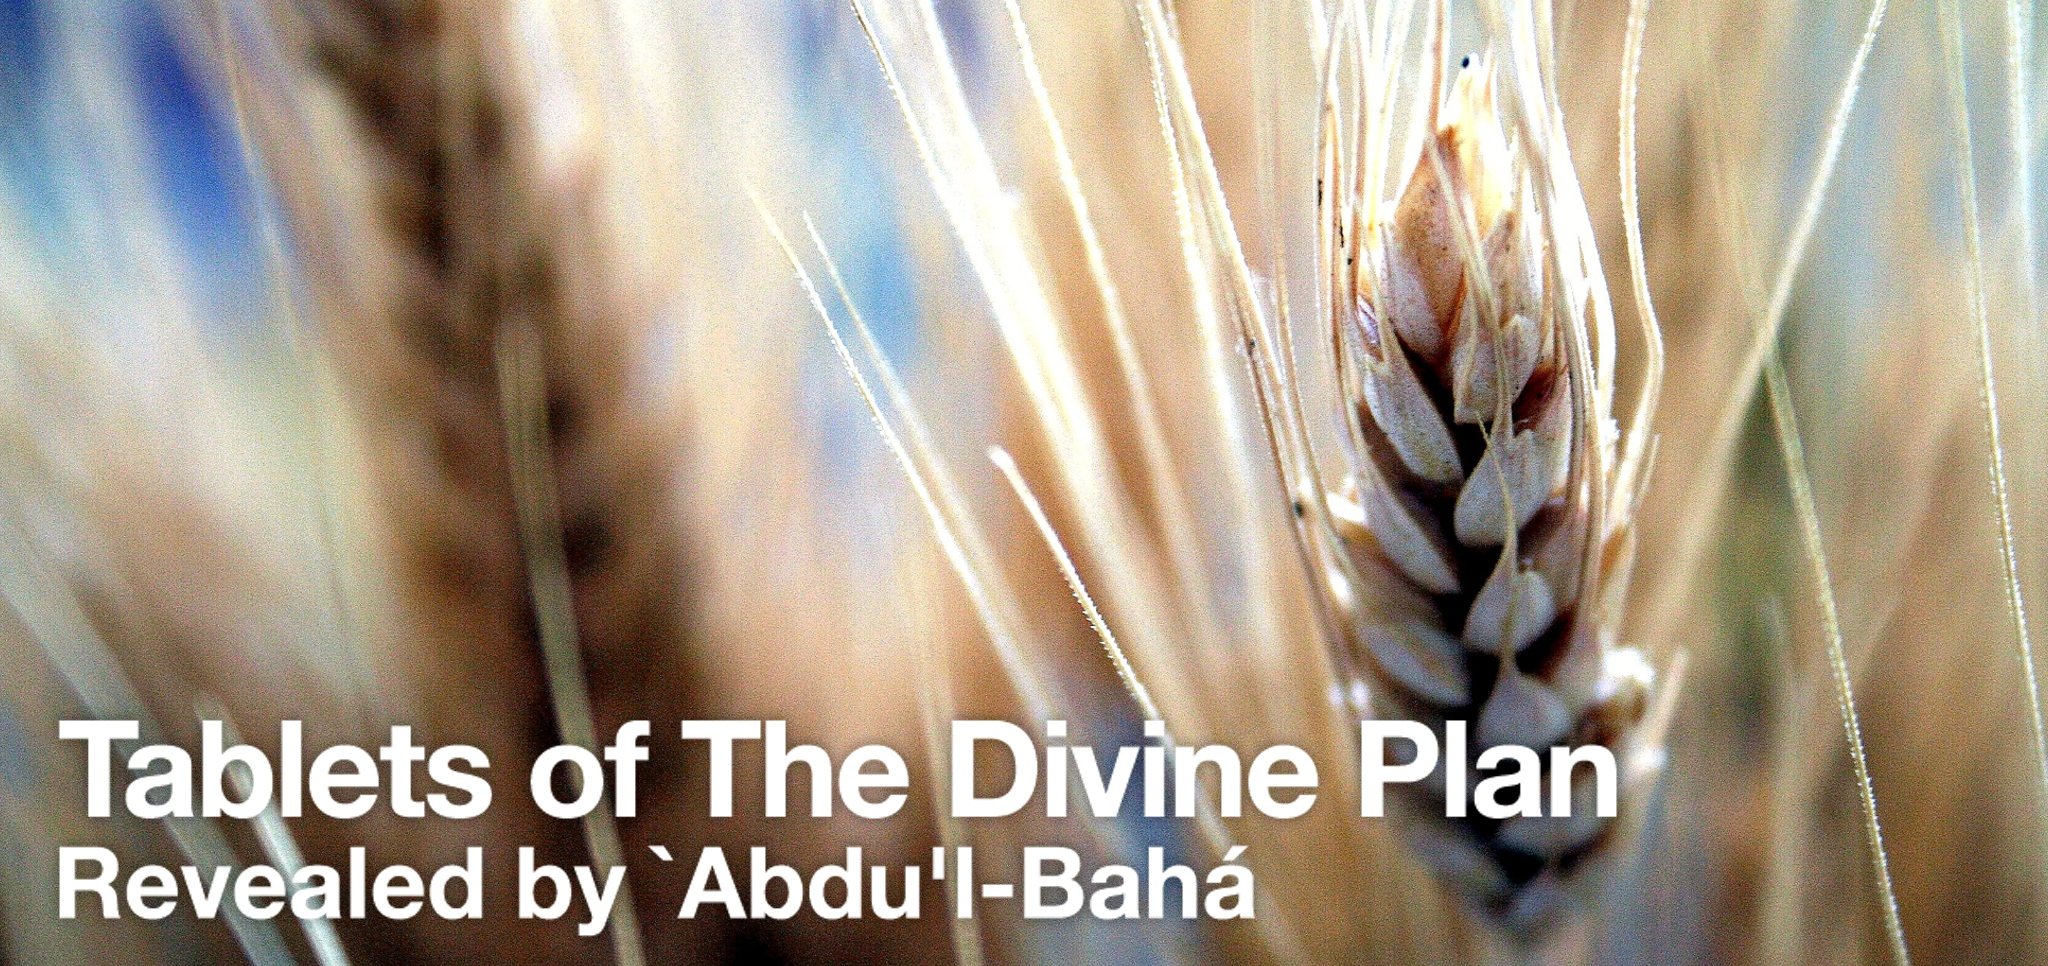 Tablets of the Divine Plan - First Four Tablets Free